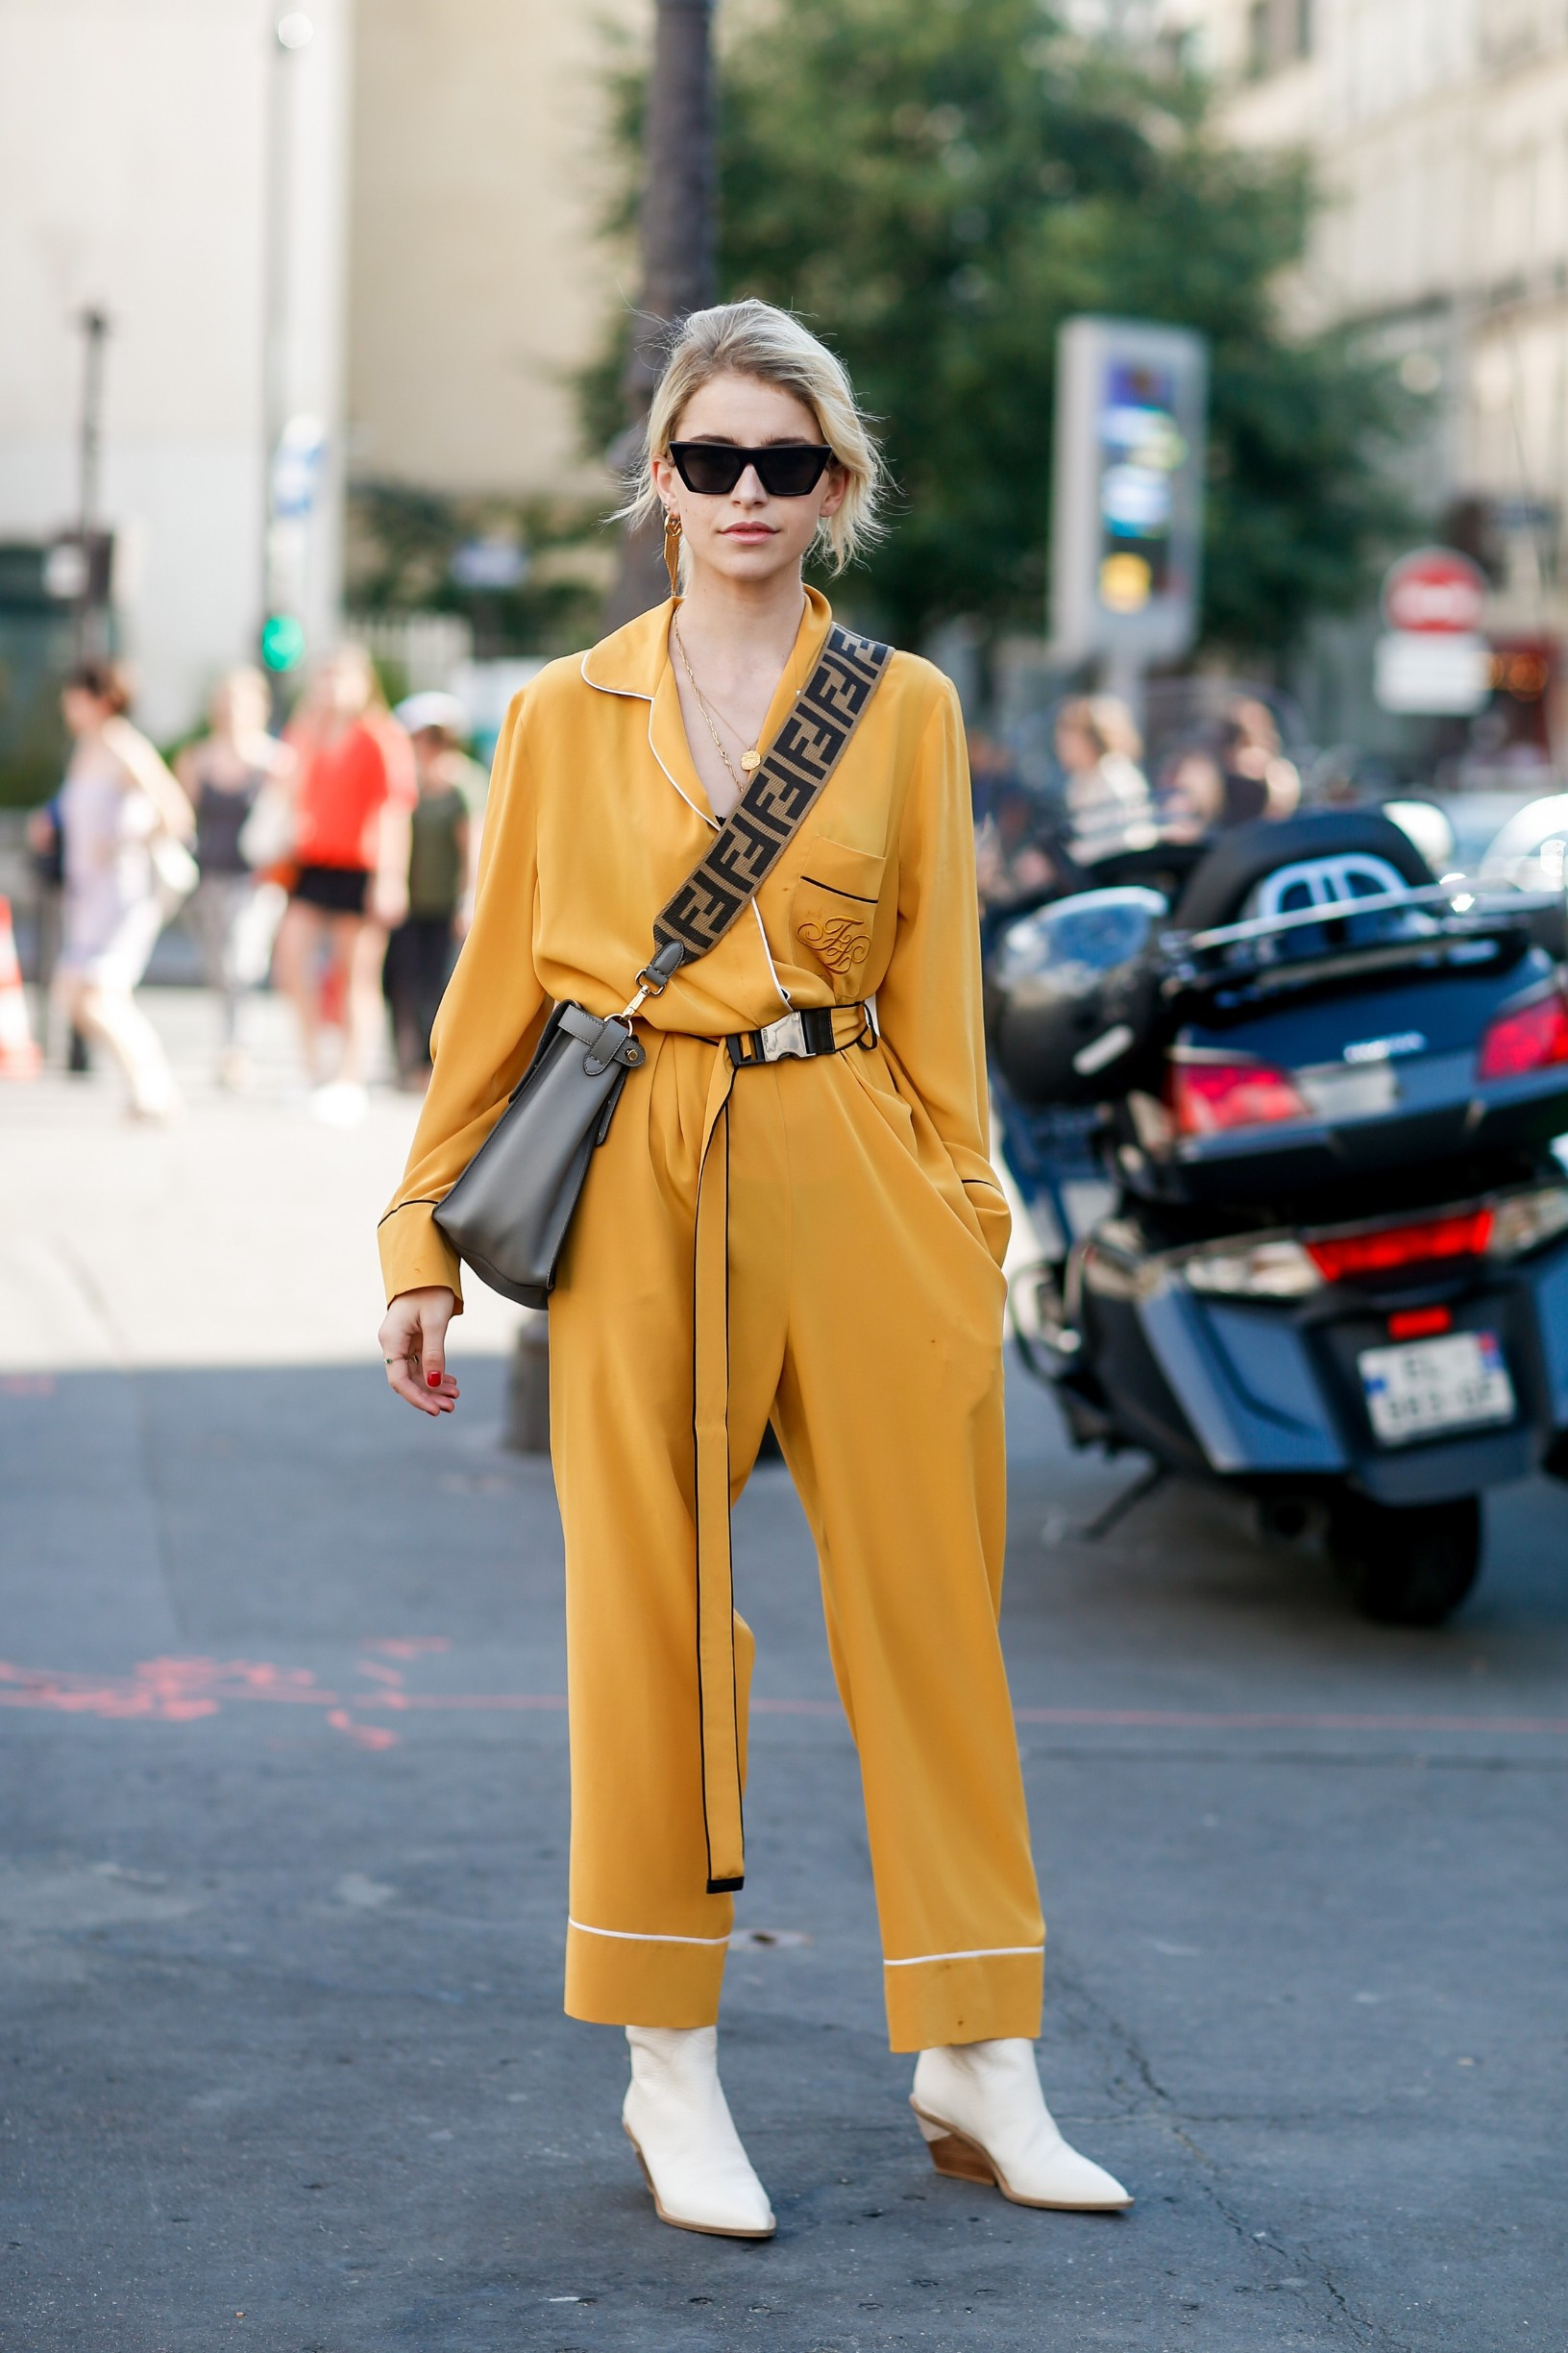 Street style, Caroline Daur arriving at Fendi Fall-Winter 2018-2019 Haute Couture show held at Palais Brongniart, in Paris, France, on July 4th, 2018.,Image: 377295597, License: Rights-managed, Restrictions: , Model Release: no, Credit line: Bertrand-Hillion Marie-Paola/ABACA / Abaca Press / Profimedia